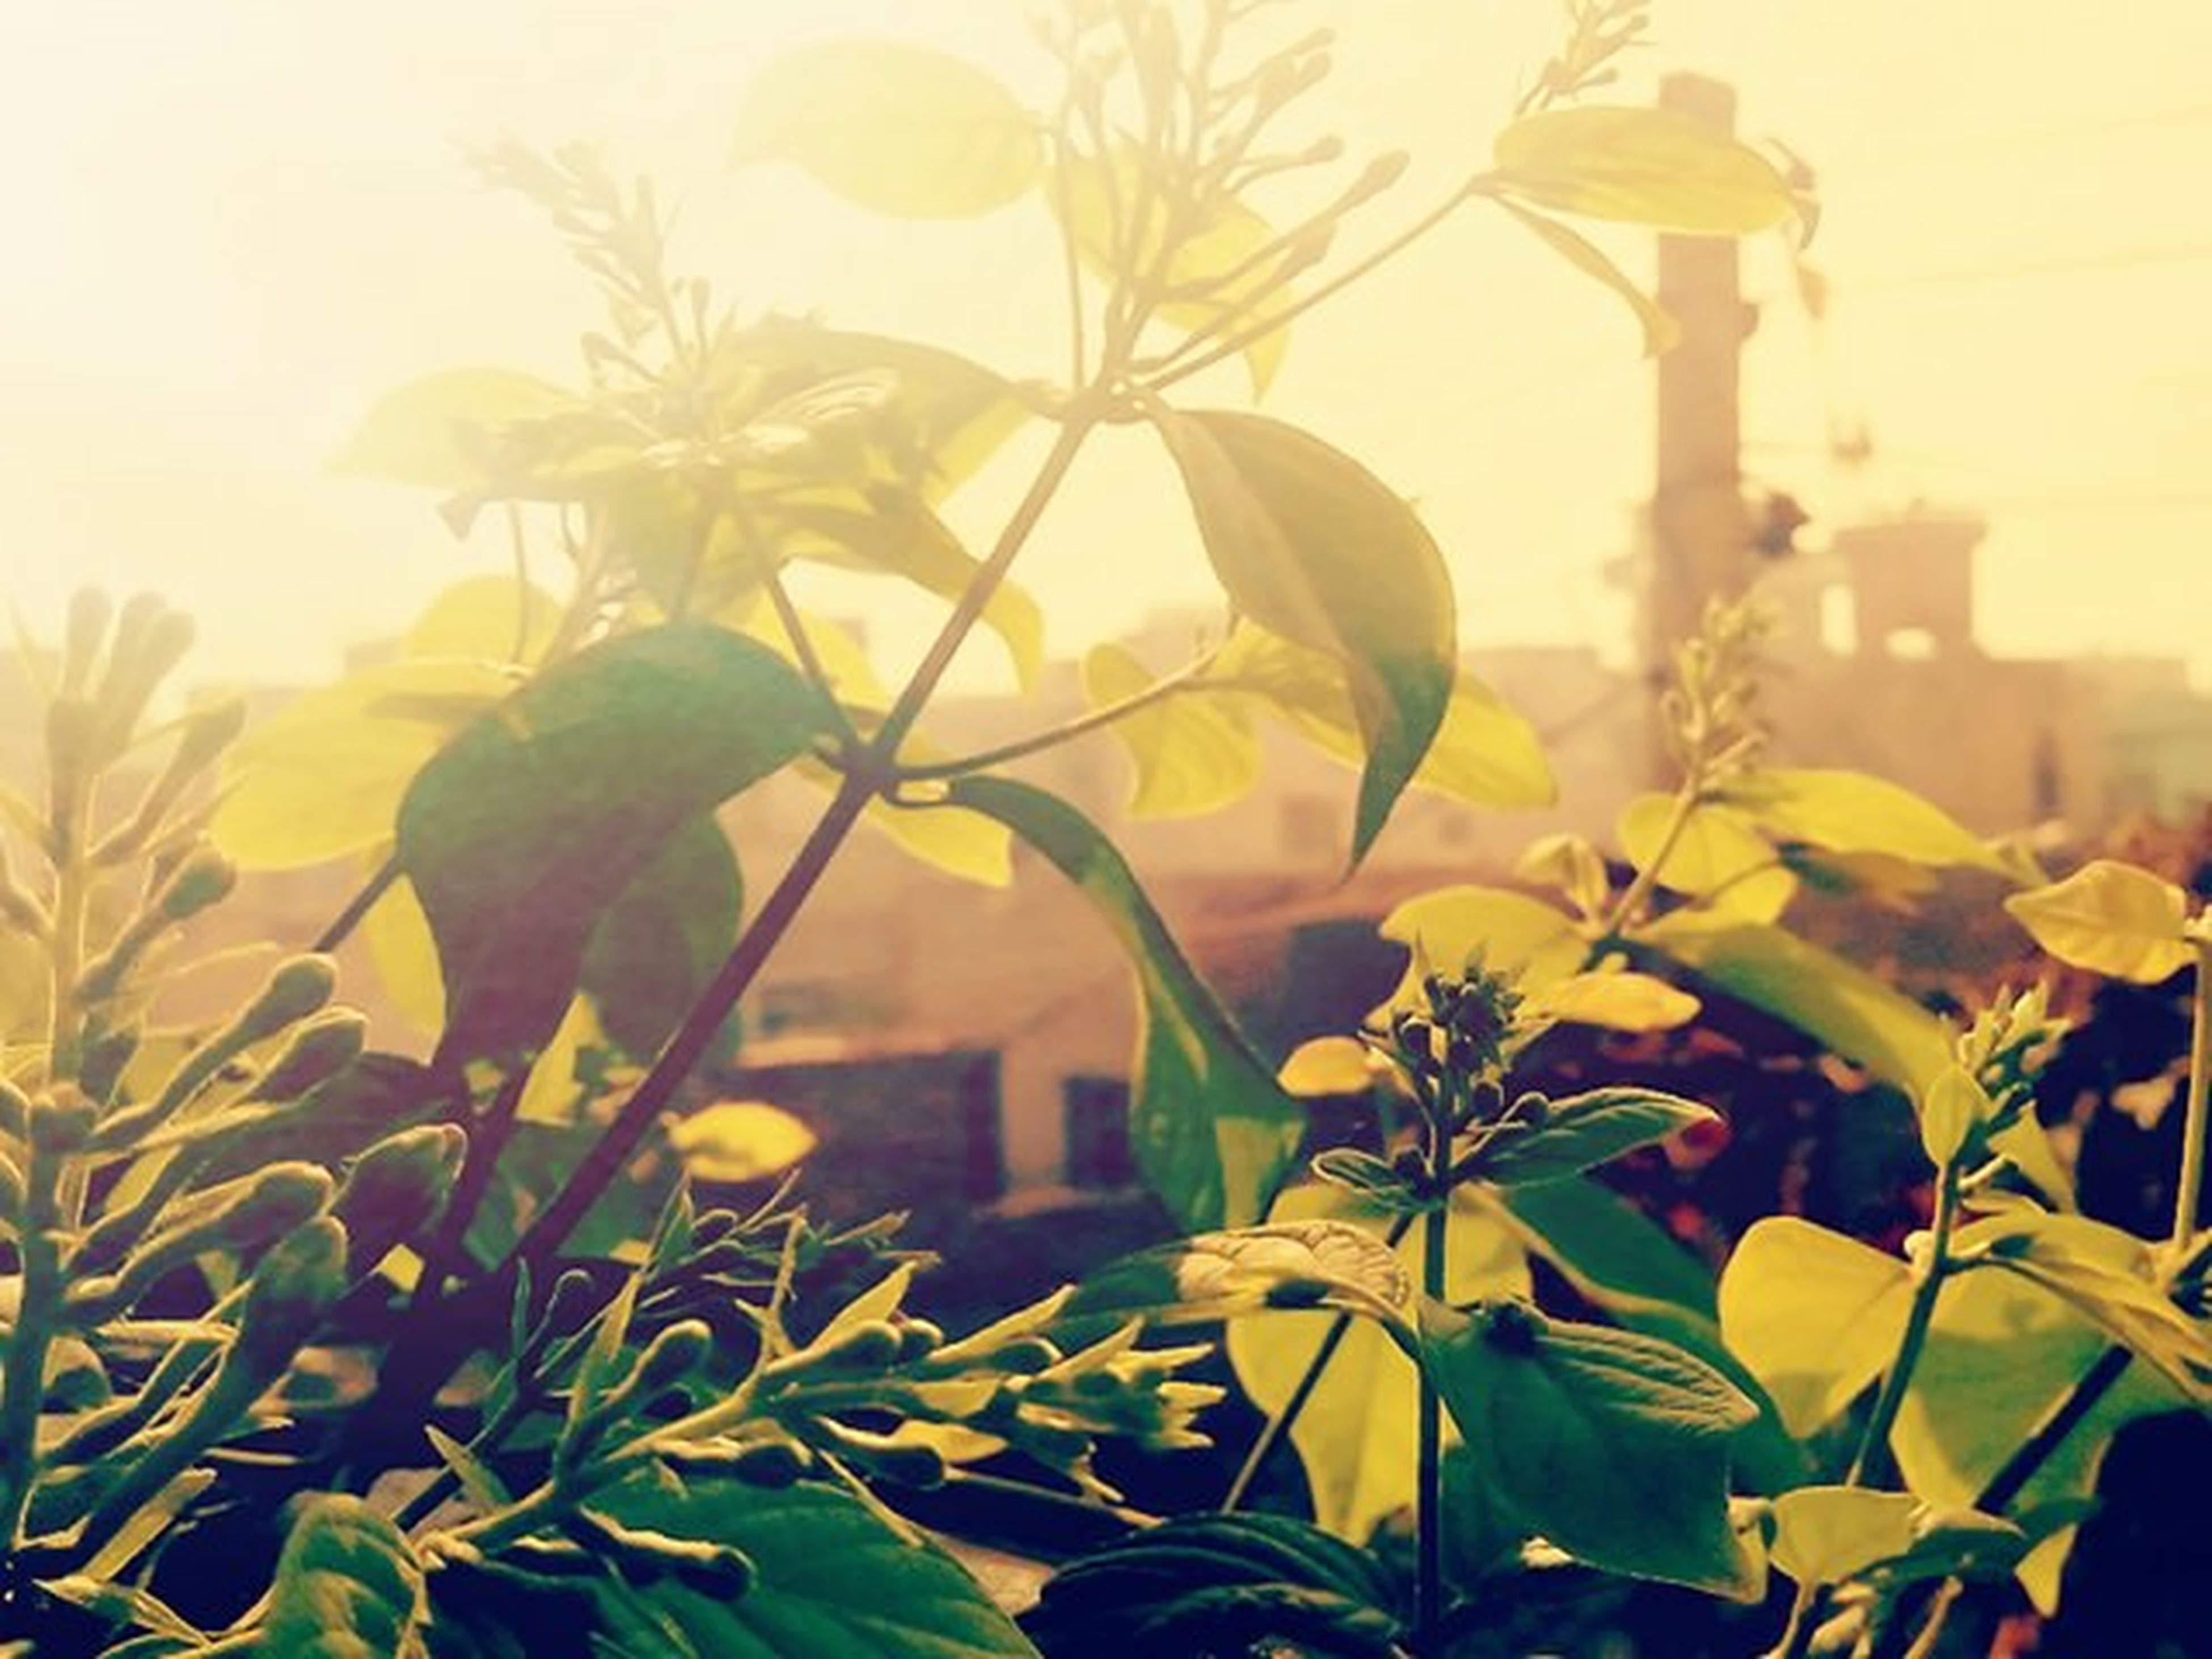 leaf, growth, plant, sunlight, focus on foreground, nature, close-up, sun, freshness, beauty in nature, sunbeam, green color, flower, outdoors, stem, no people, day, growing, fragility, front or back yard